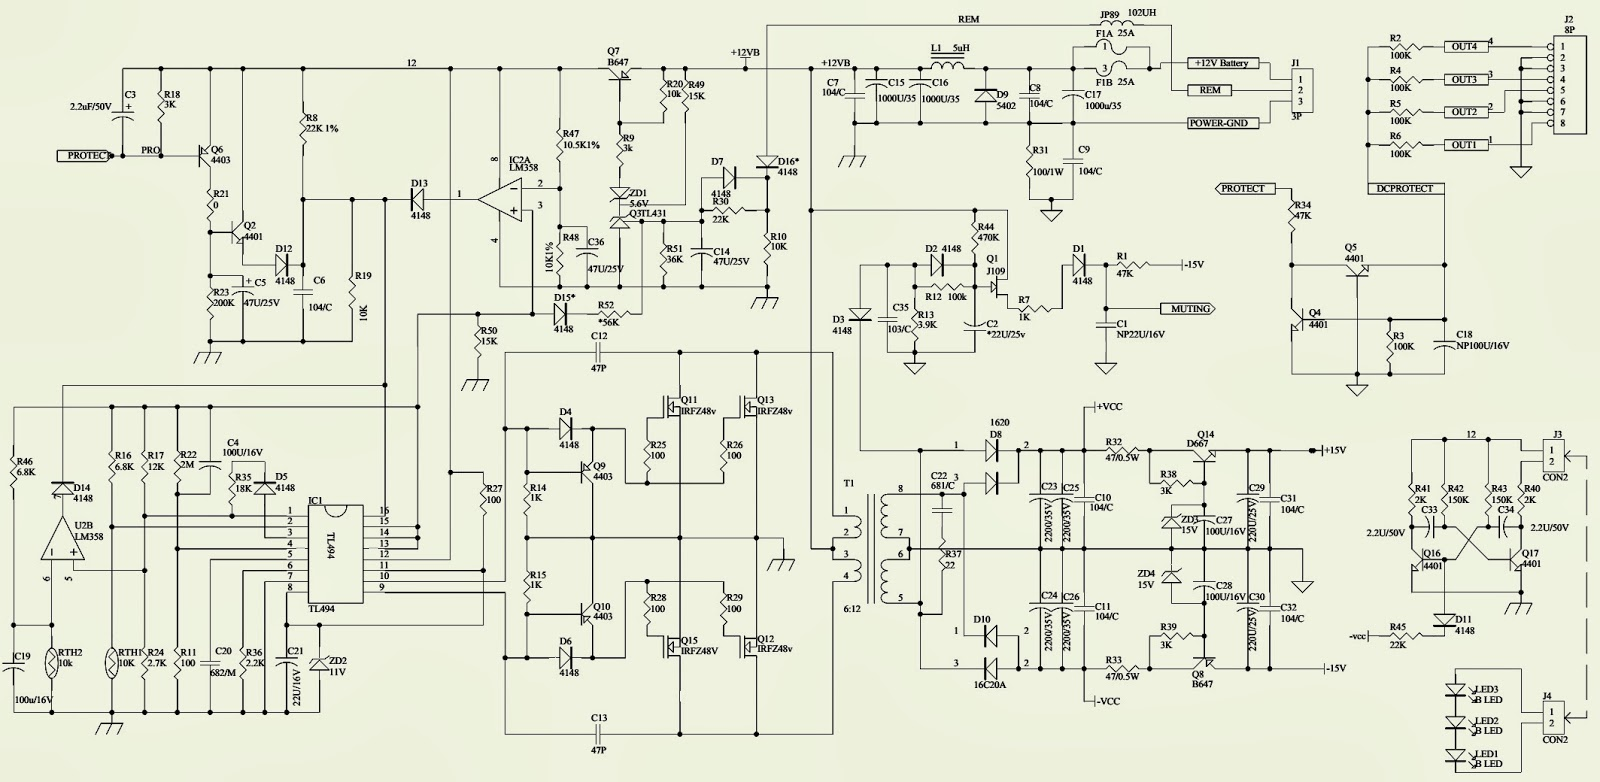 Jbl Amplifier Wiring Diagram Library Car Sub Amp Wire Amplifiers Click On The Schematics To Zoom In